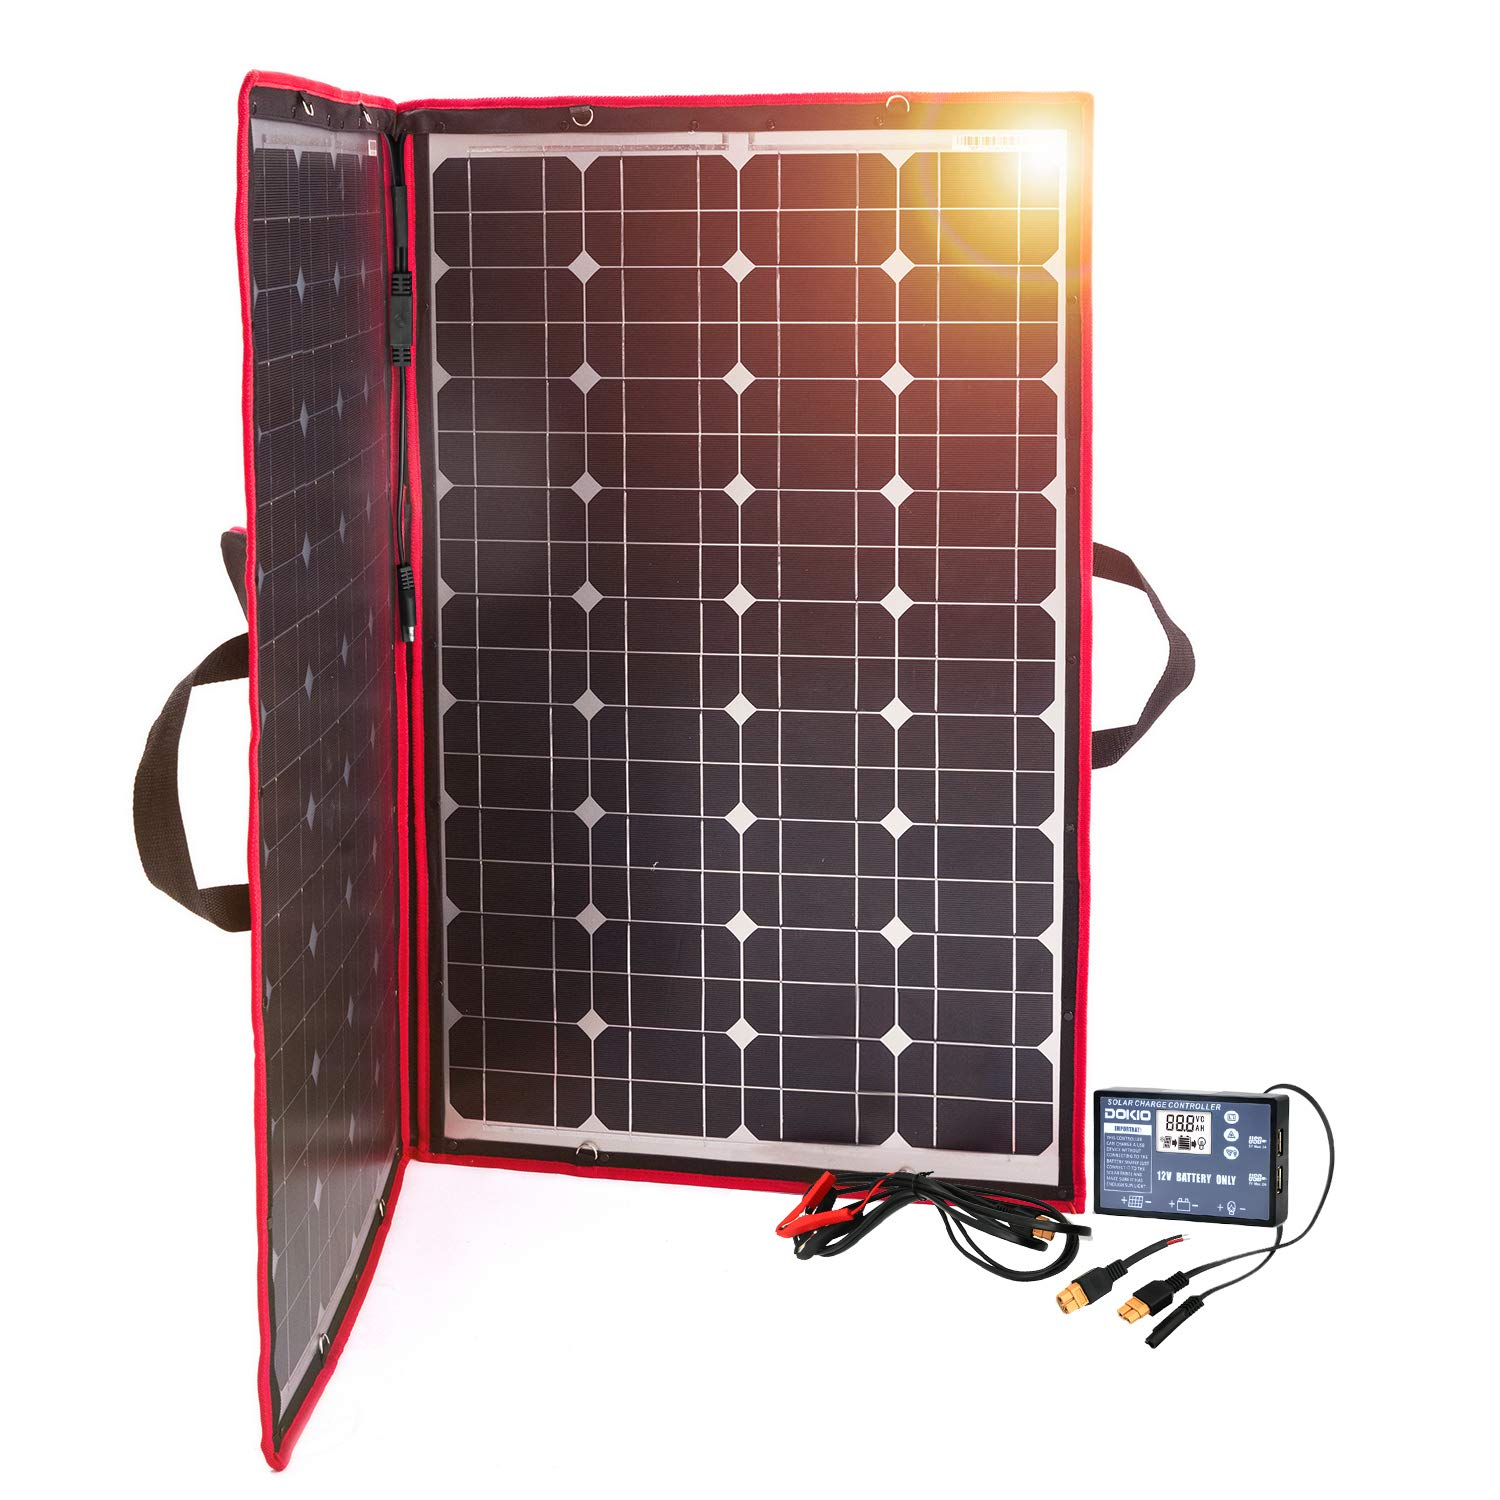 DOKIO 100W 12V Foldable Solar Panel Kit Monocrystalline with Solar Controller USB Output for Caravan RV Boat Camper Any Other Irregular Surface by DOKIO